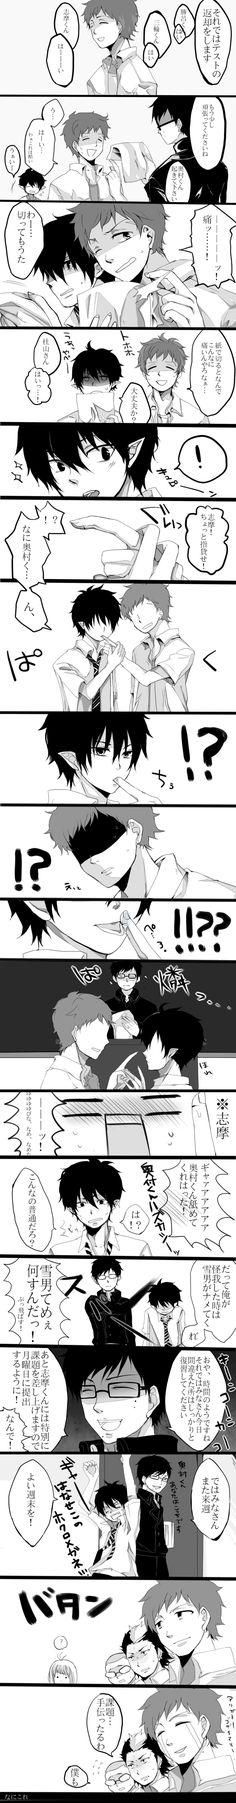 Yukio: I'll return your tests now. Suguro-kun! (Here.) Miwa-kun! (Here.) Shima-kun! (Here.) Yukio:Try a little harder next time. Okumura-kun, wake up. Shima: Man, he's harsh. Shima: Ow, paper cut. Shima: How do paper cuts even hurt this much? Rin: You okay? Yukio: Moriyama-san (Here!) Rin: Shima! Gimme your finger for a sec. Shima: What are you-- (deformed face) Note: This is Shima Shima: H-he l-l-l-l-licked... Shima: Aaaaaaaah! He licked my finger! This is so embarrassing! Rin: Wait, what's…